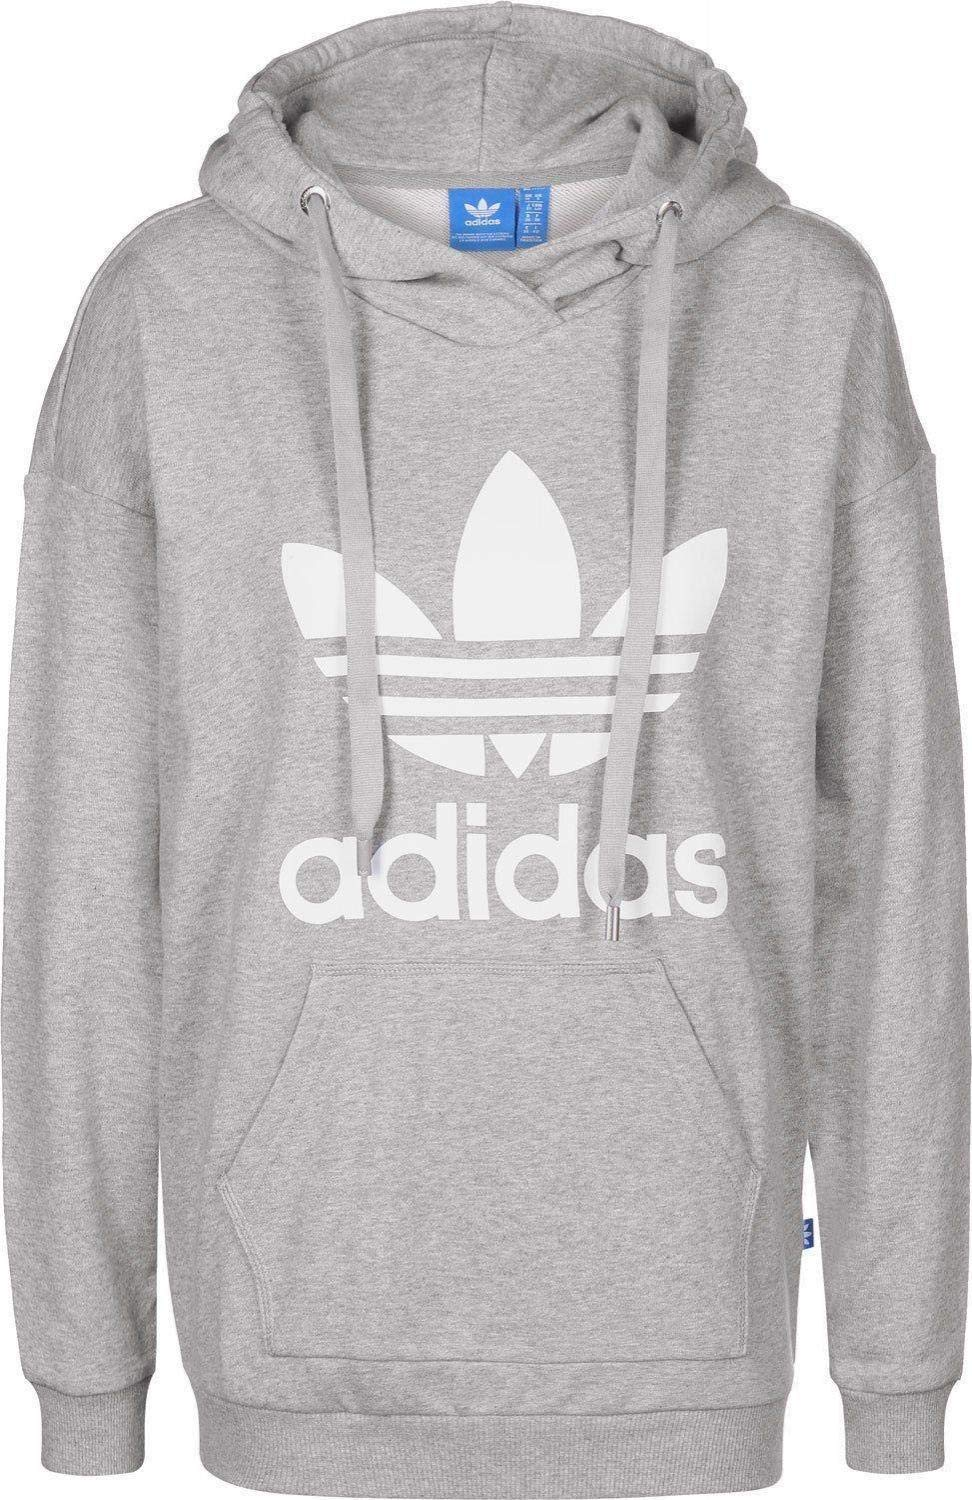 adidas Bp9486 Sweat-Shirt à Capuche Femme  Amazon.fr  Sports et Loisirs c05ddfec224